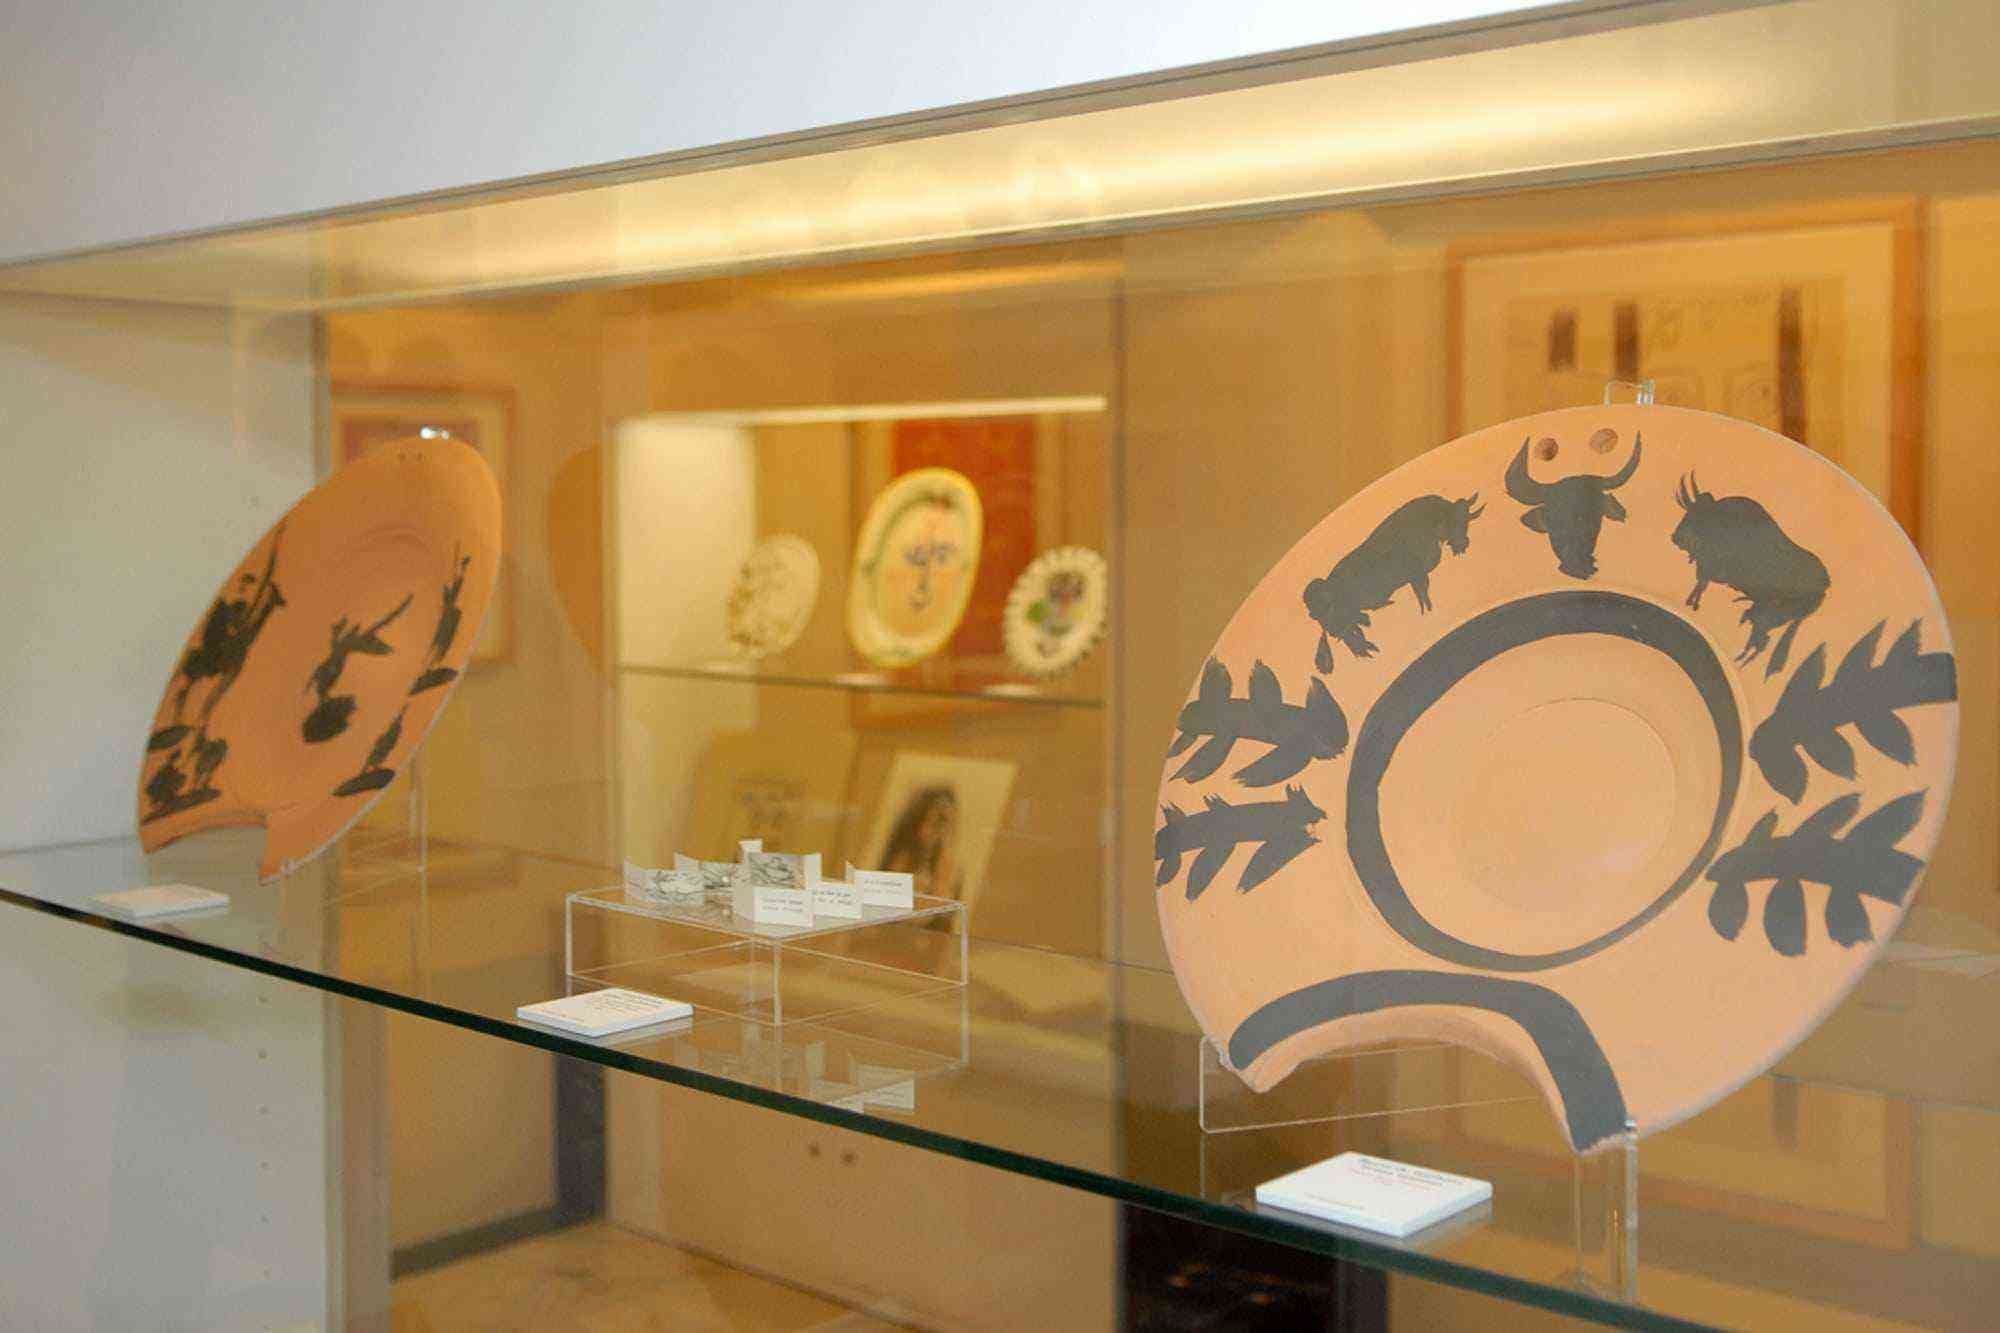 Vitrina Museo Picasso Colecci+¦n Eugeni Arias 2